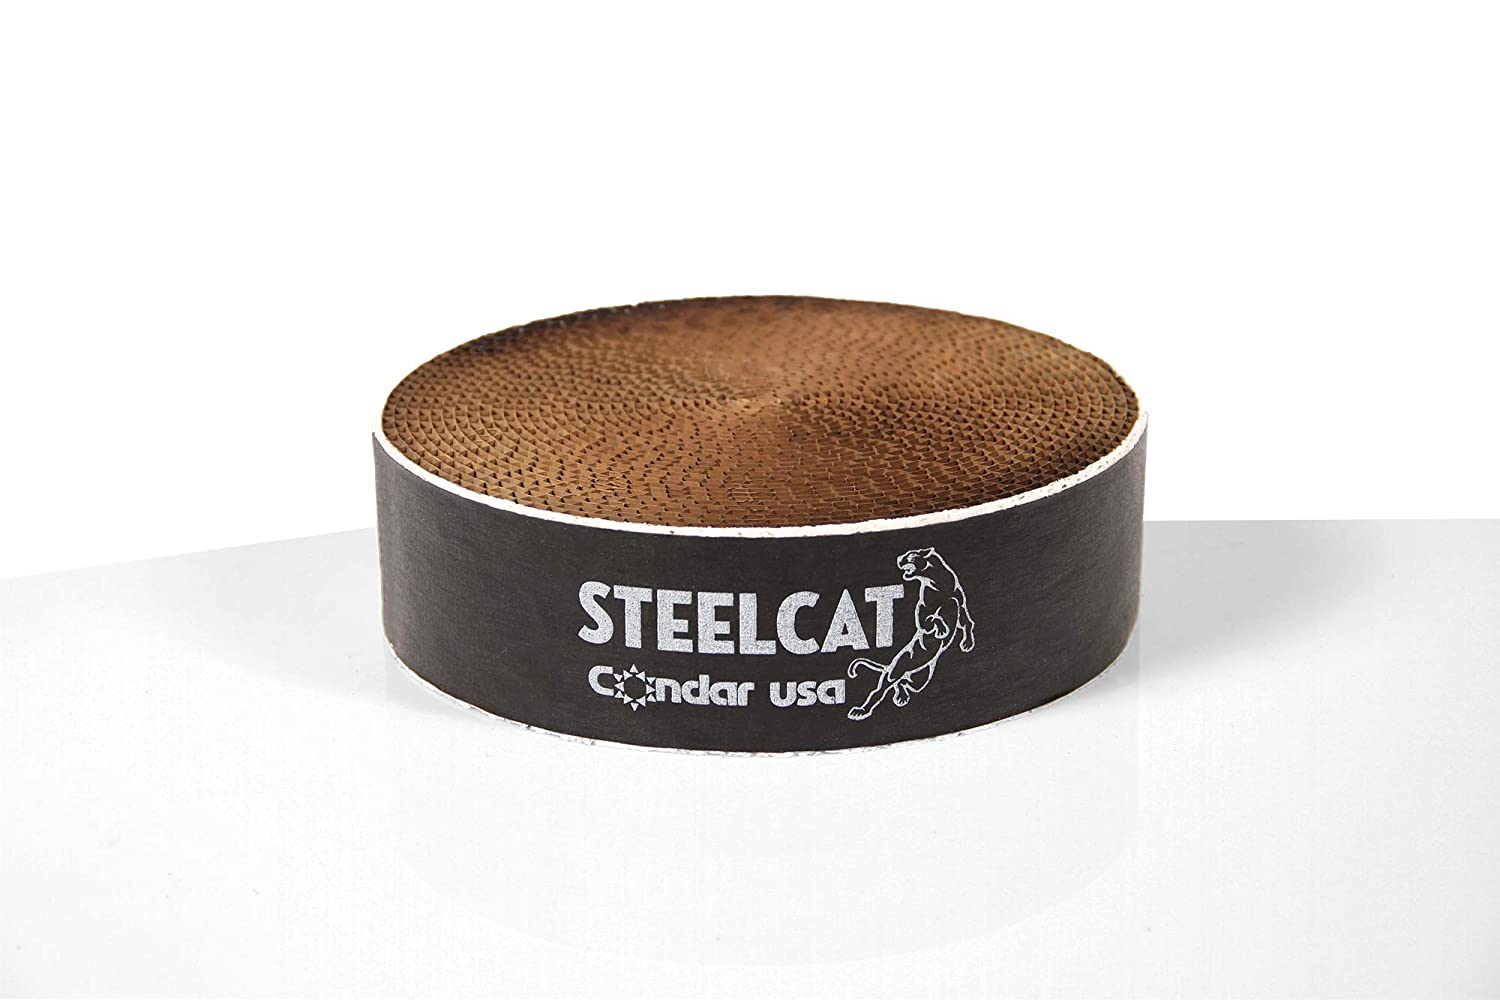 Amazon.com: Steelcat Acero Panal Catalizador Combustor (CS ...